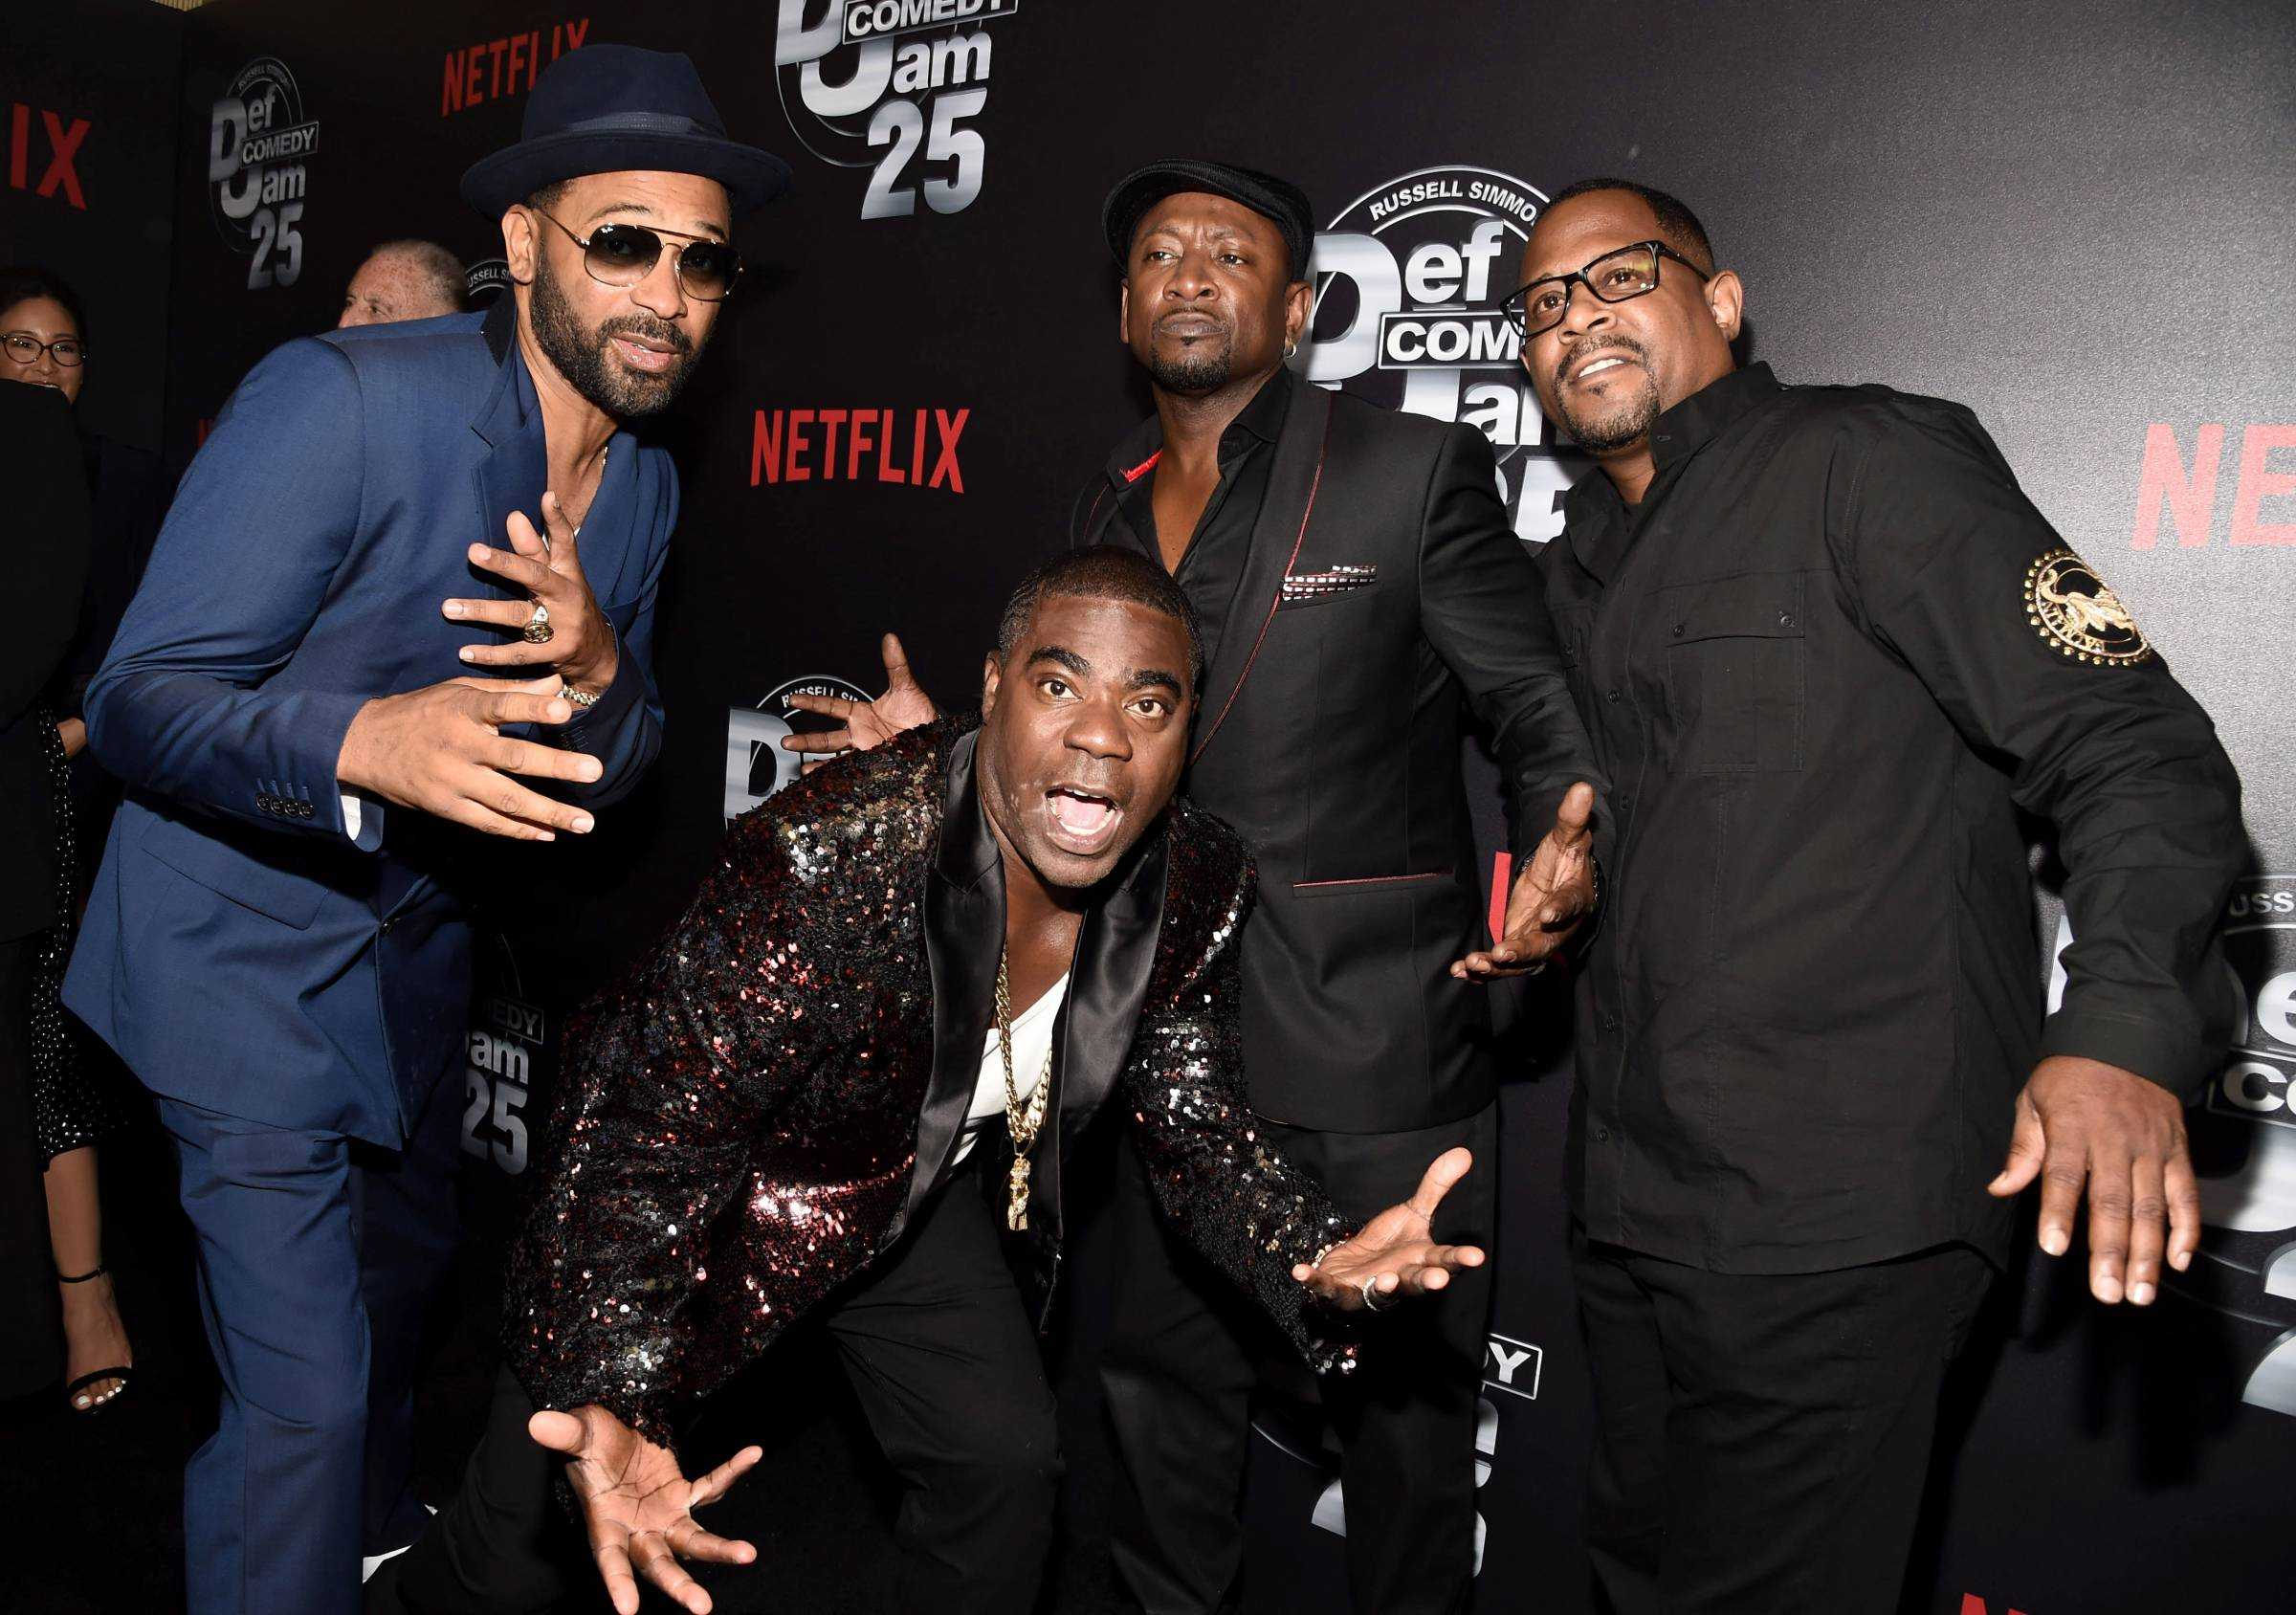 DEF COMEDY JAM 25 LAUNCHES SEPTEMBER 26TH ON NETFLIX! (Red Carpet Photos)